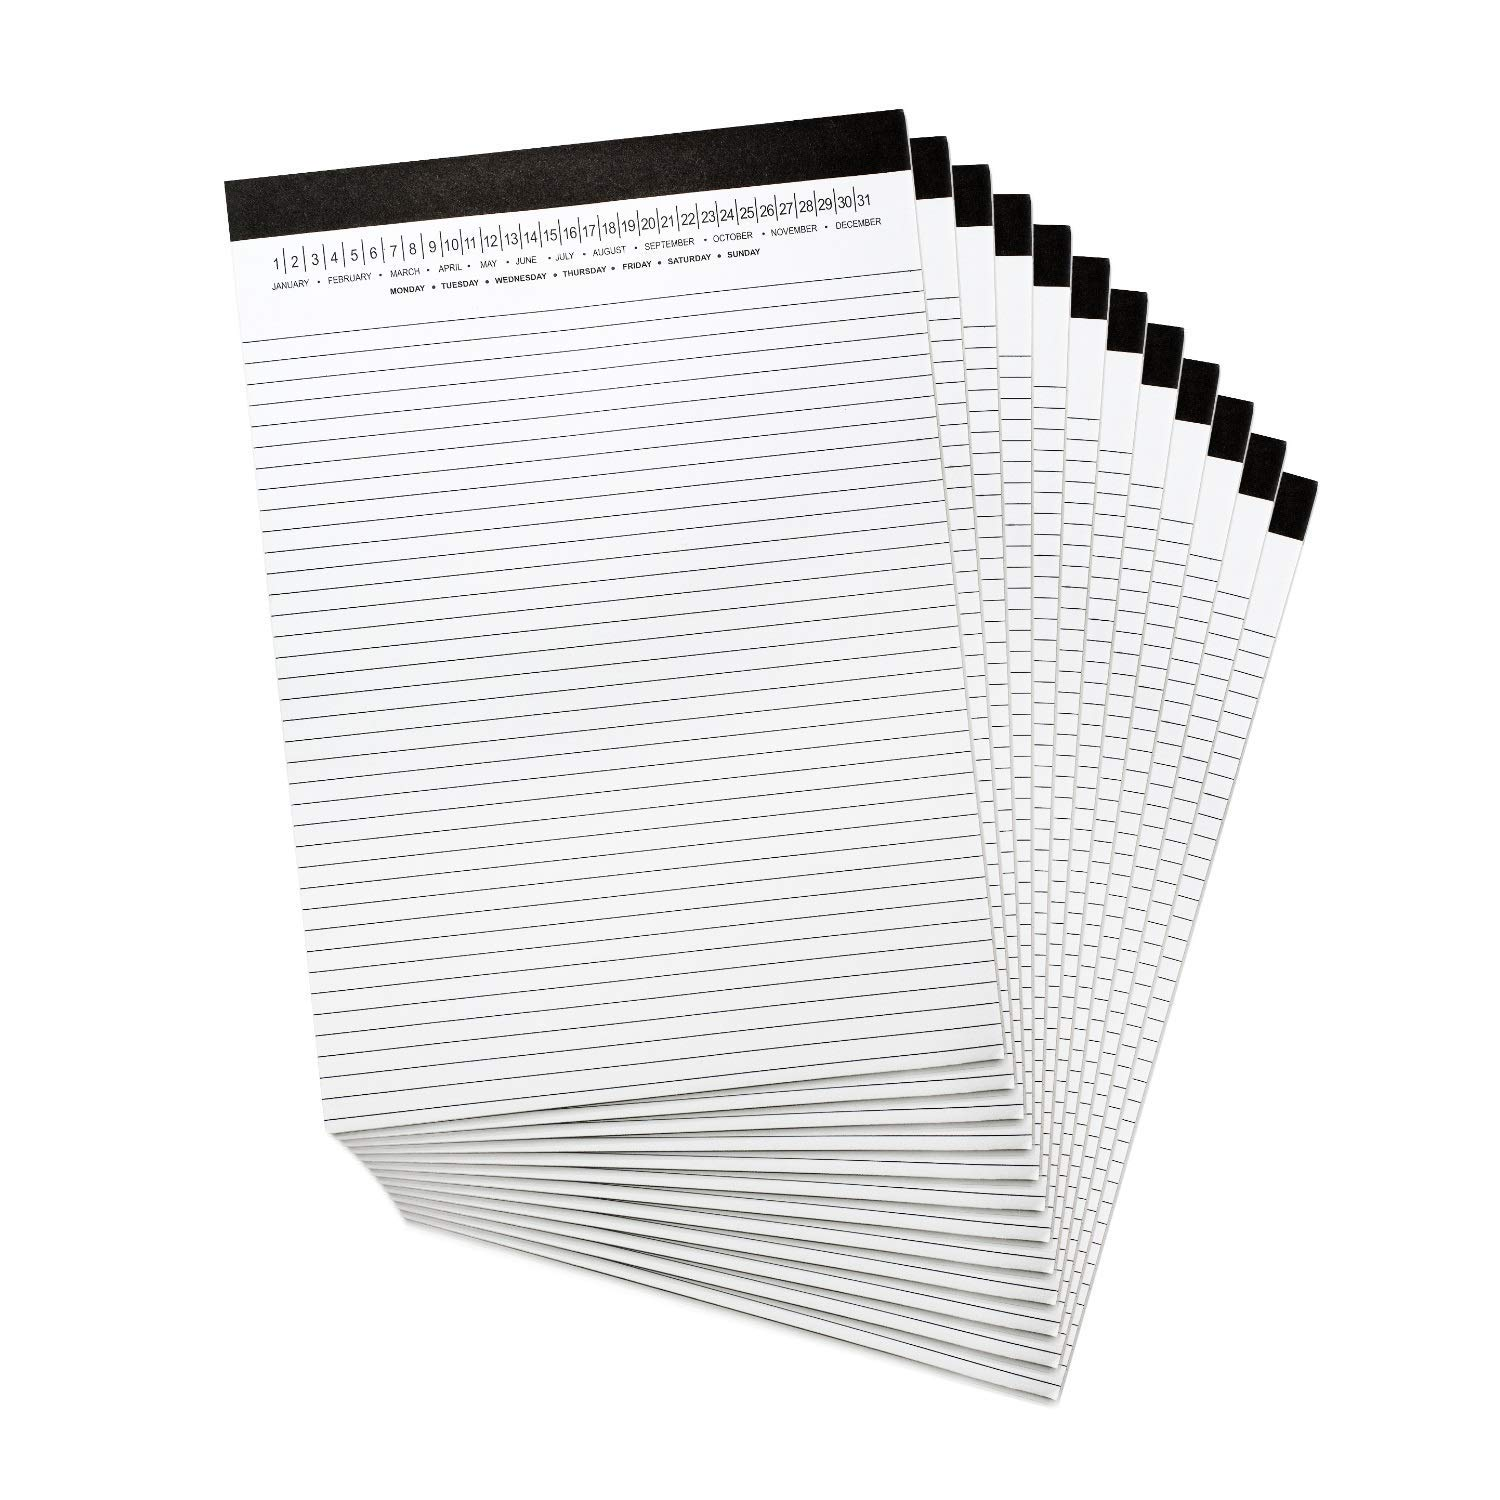 Narrow Ruled Legal Pads 8.5 x 11 with Date on Top White Note Pads College Ruled Writing Tablets for Office 50 Sheets, 3 Pack Refill Pad School